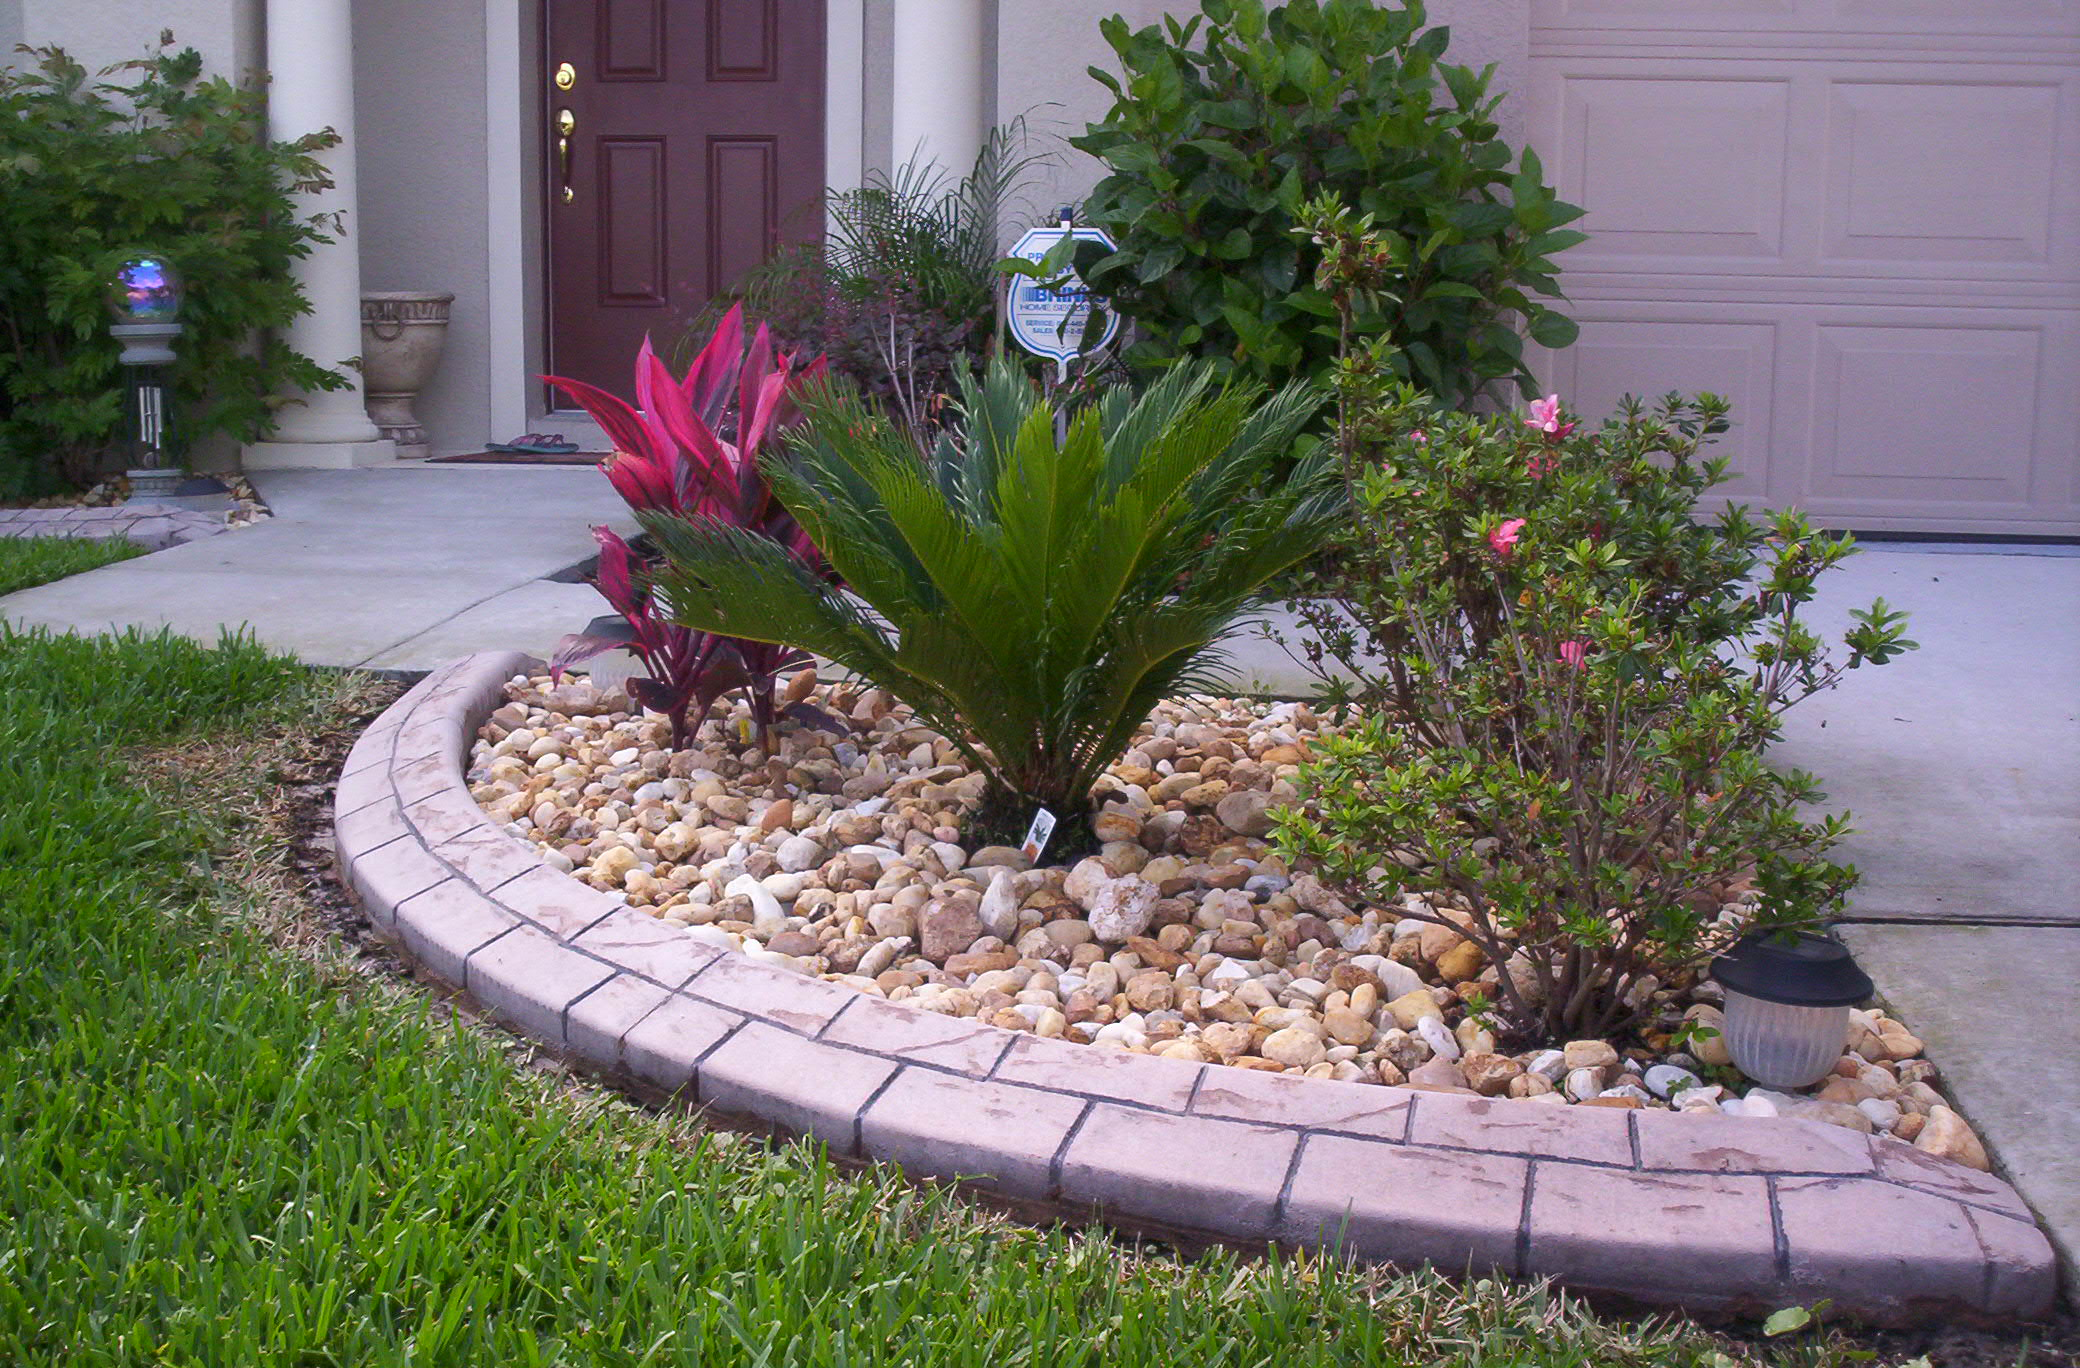 Garden curbing traders wholesalers and buyers concrete for Garden edging stone designs